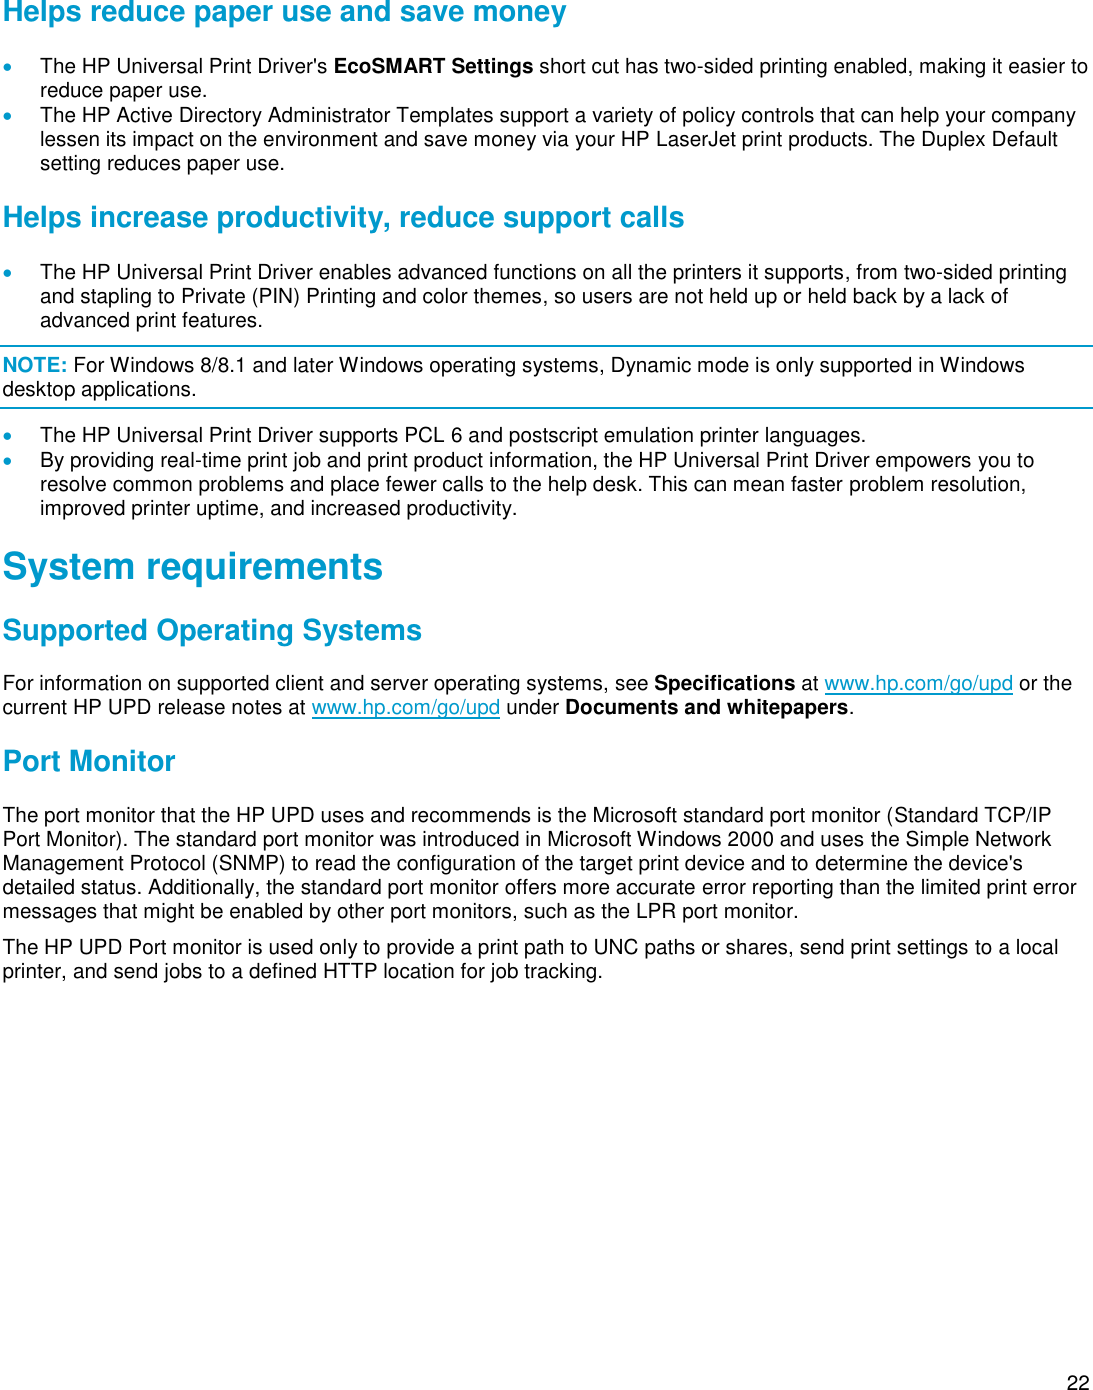 HP UPD System Administrator's Guide C03633736